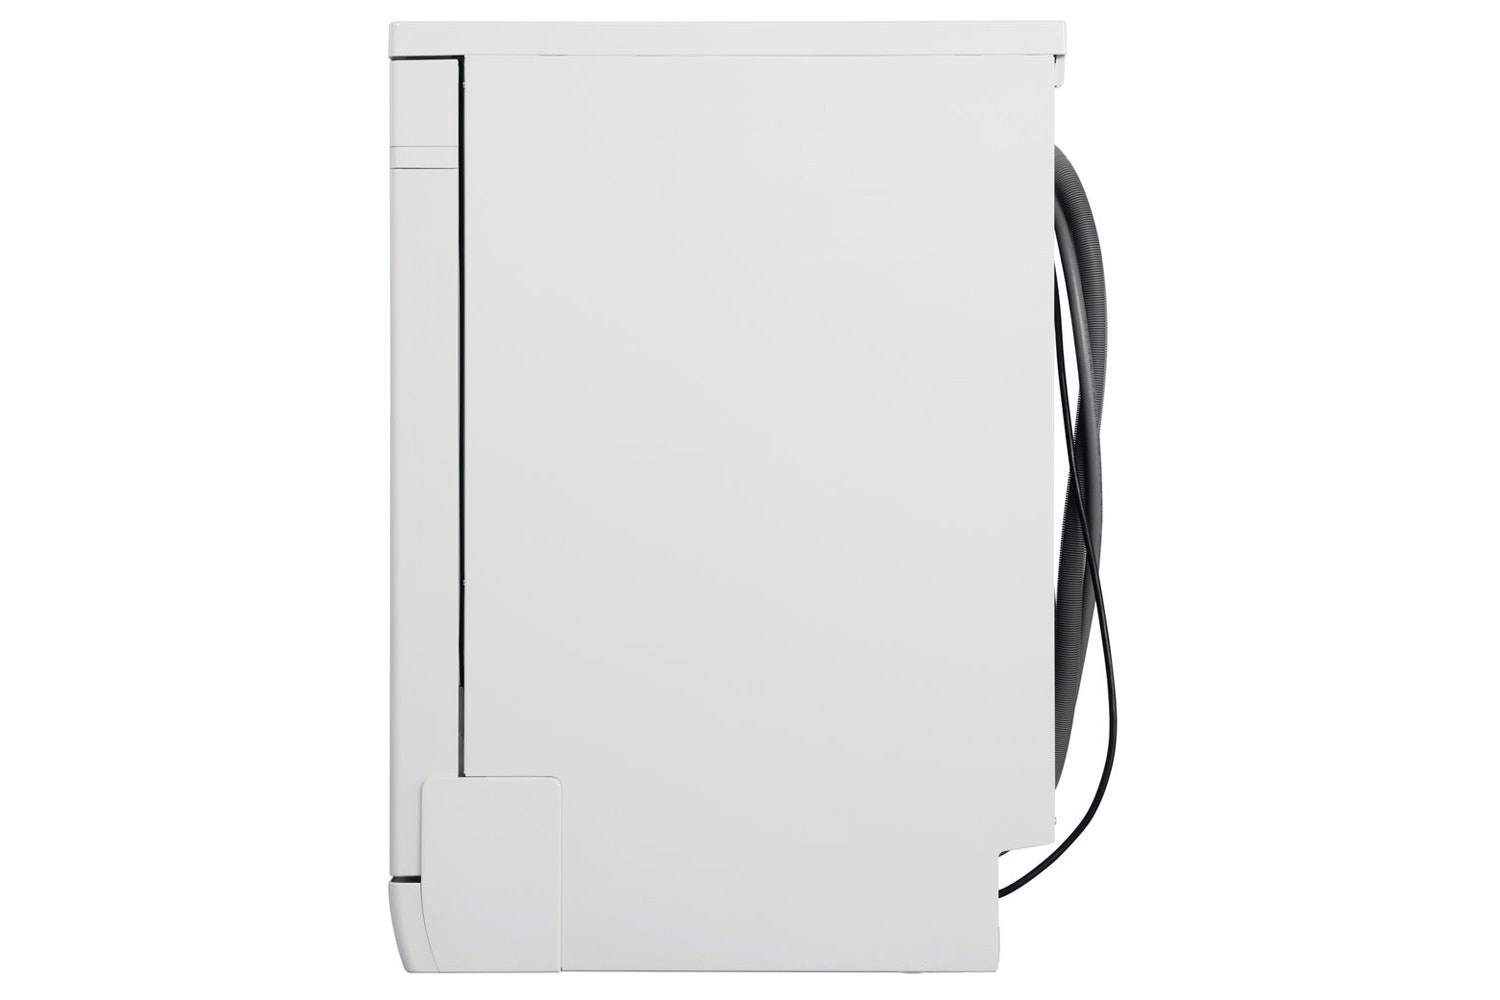 Whirlpool 13 Place Freestanding Dishwasher | WFE2B19UK